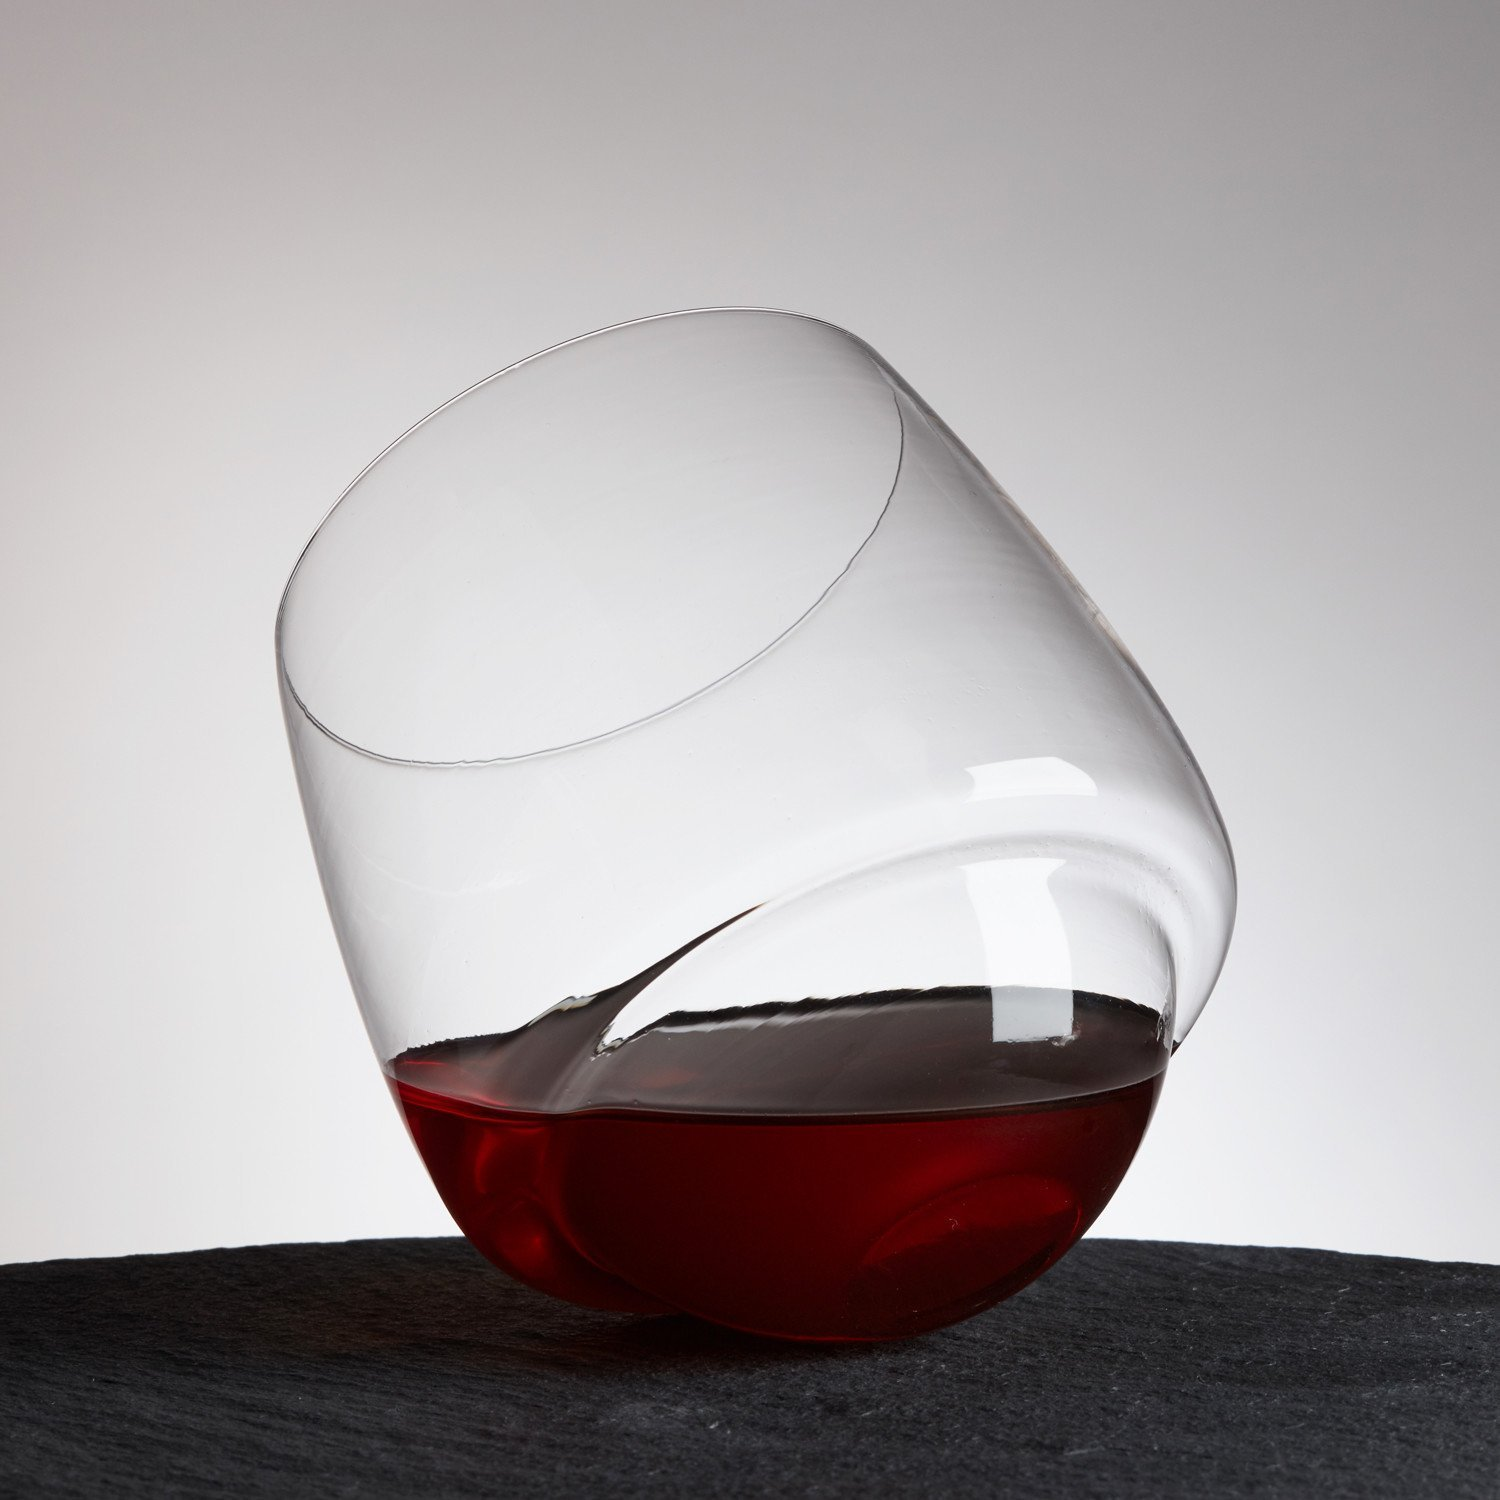 Saturn Wine Glass Unique And Elegant Spill Resistant Red Wine Glass Great Gift Idea B0716JKBGB 4